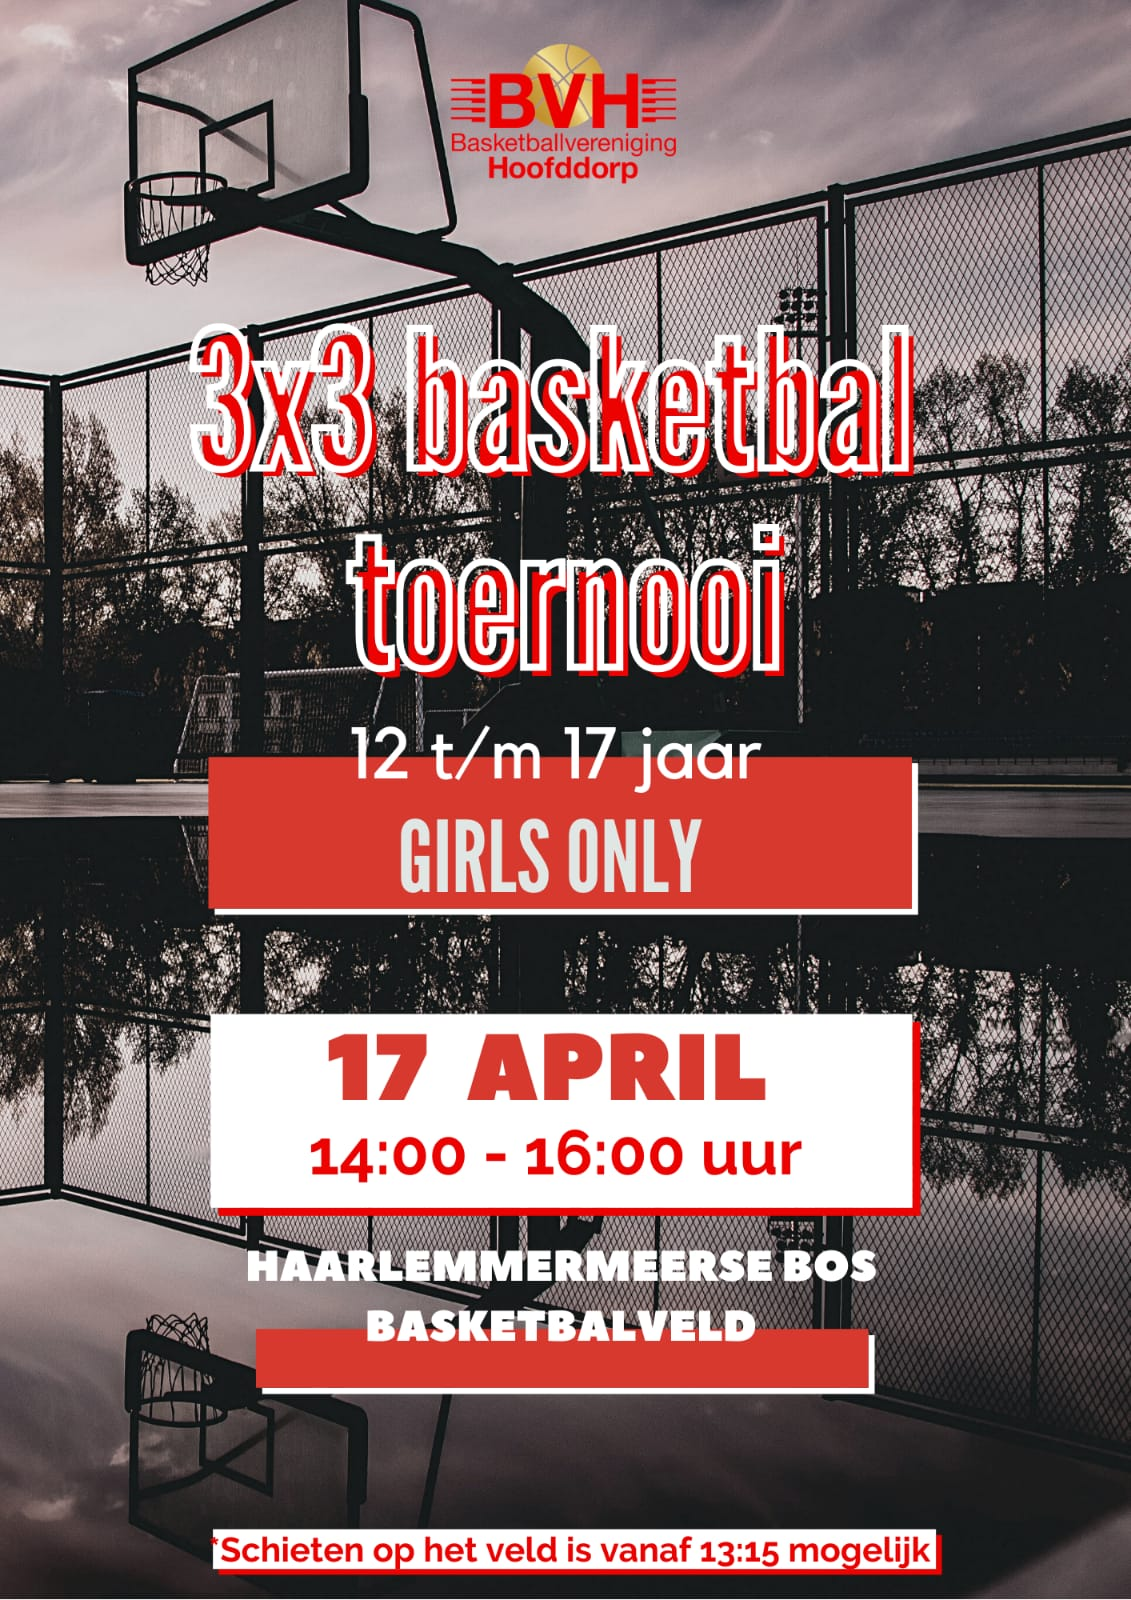 3x3 Basketbaltoernooi Girls Only